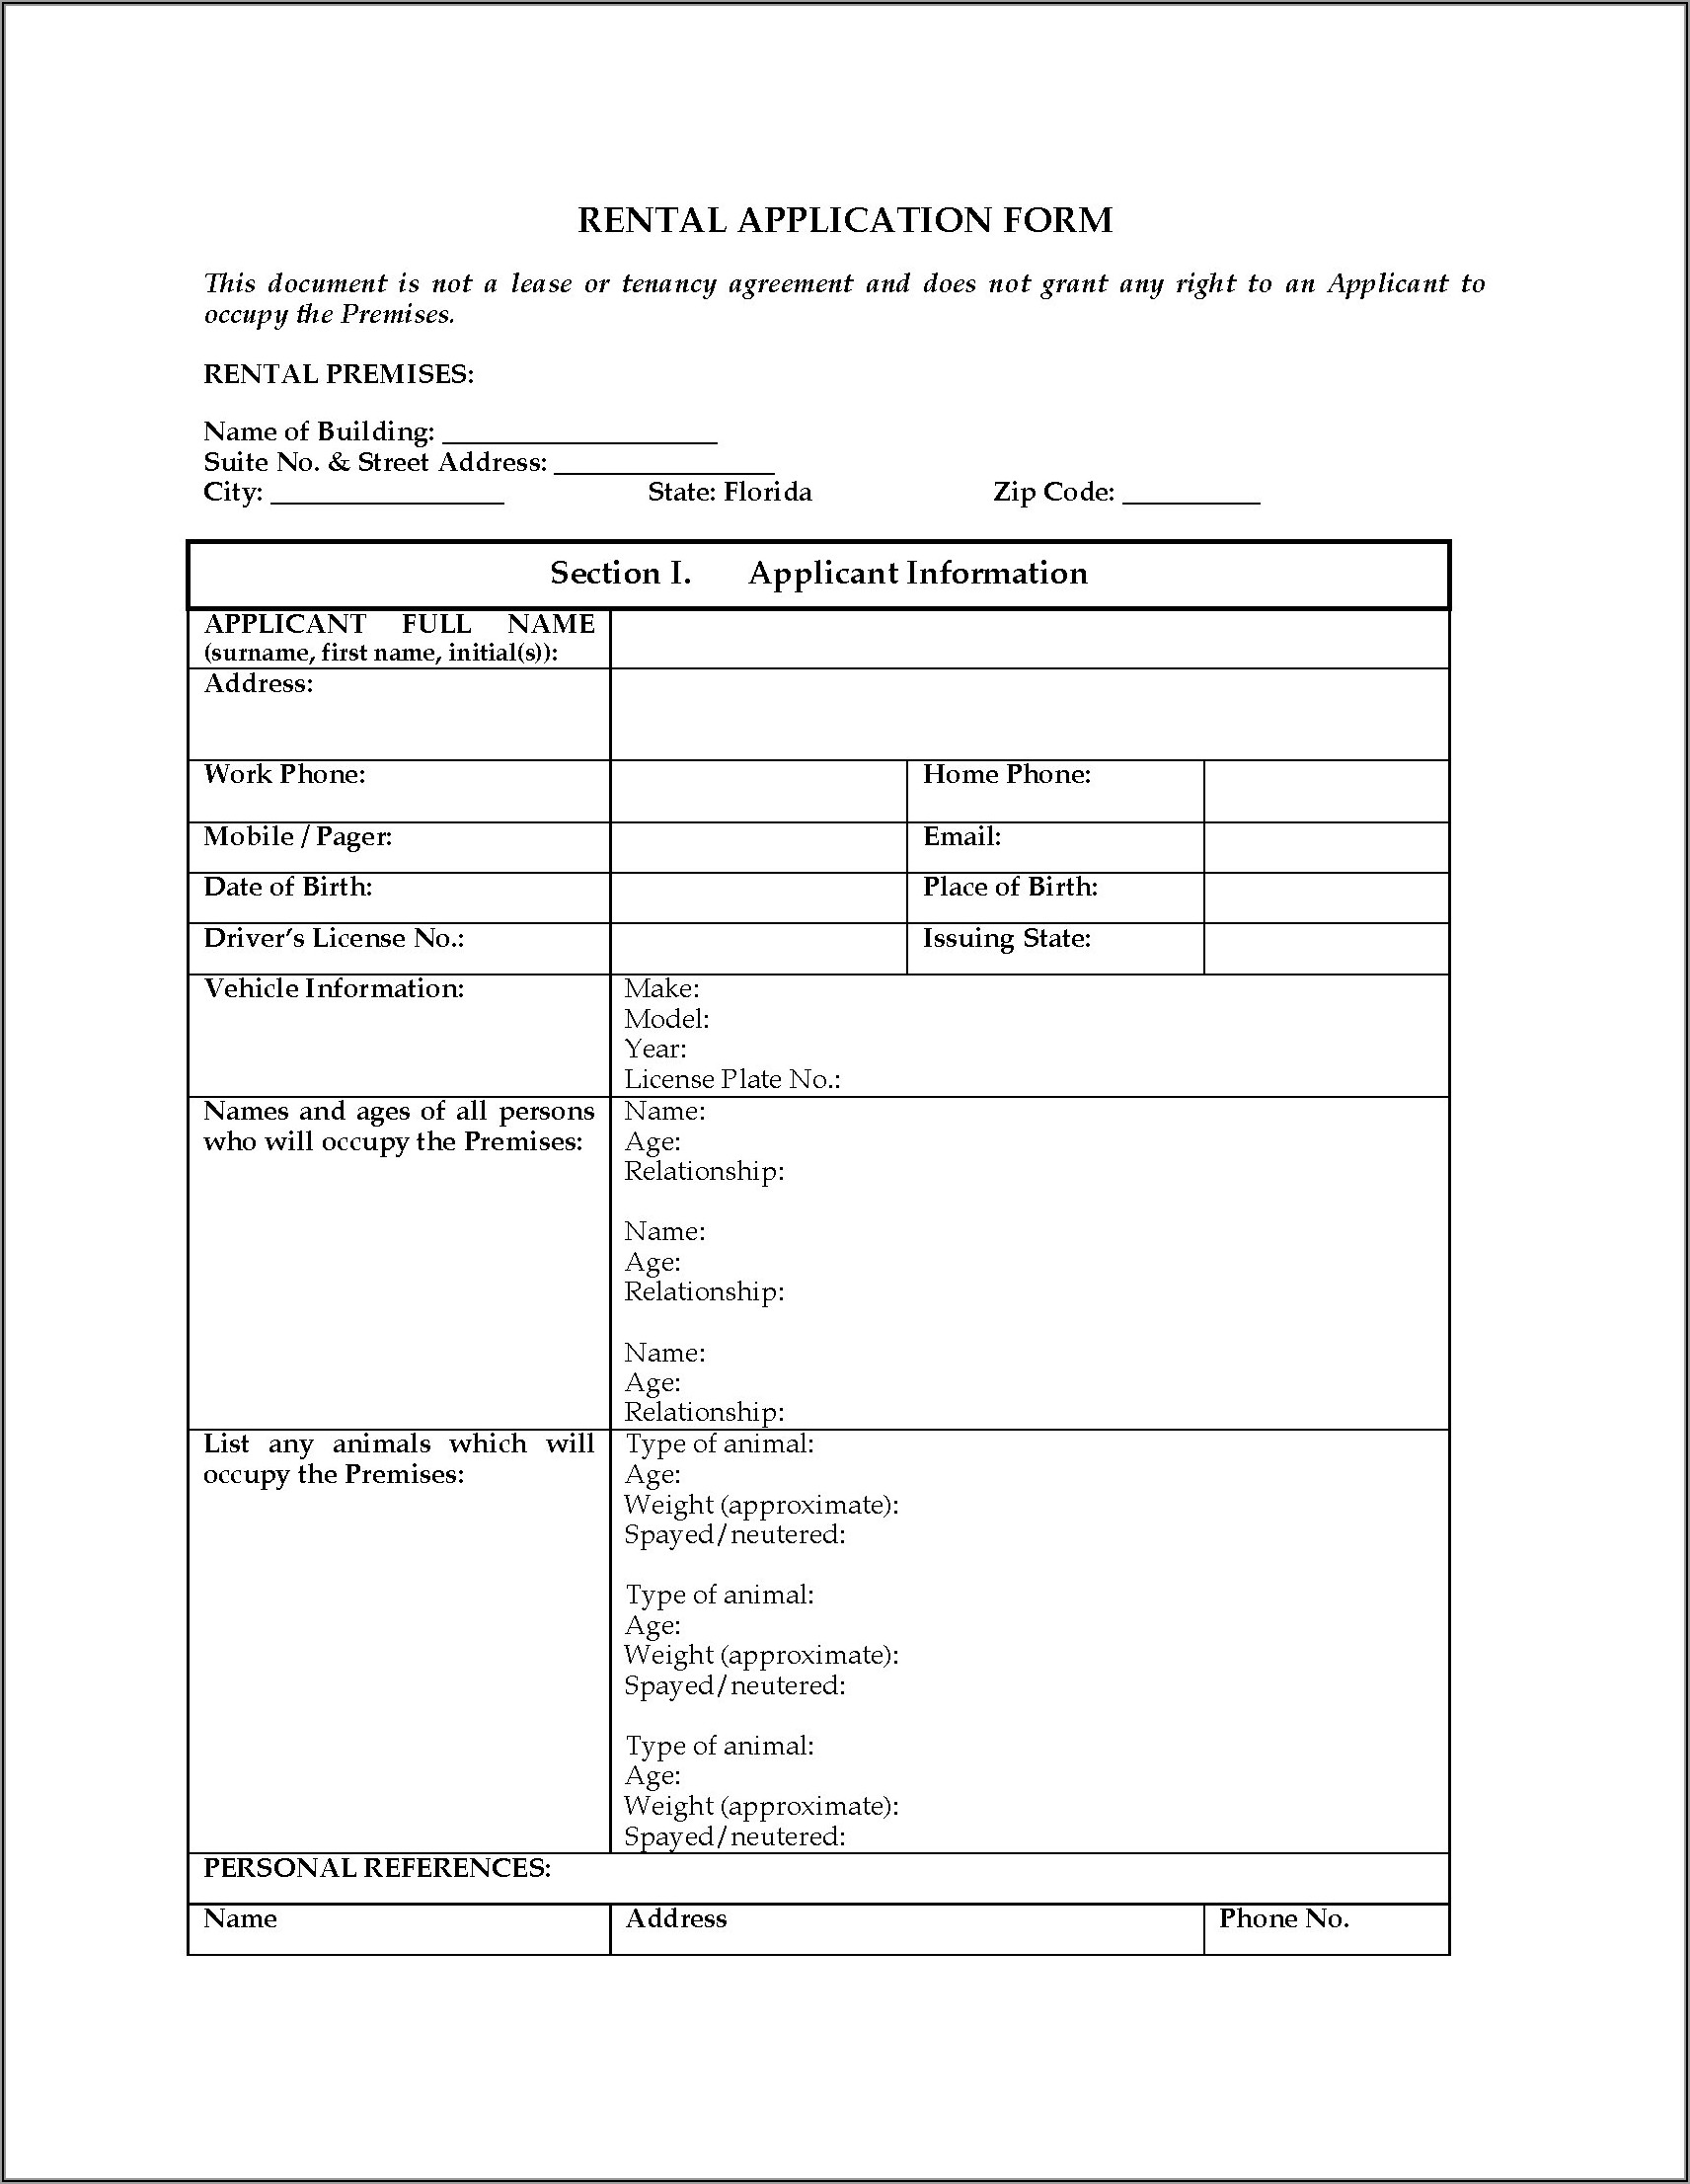 Rental Application Form Florida